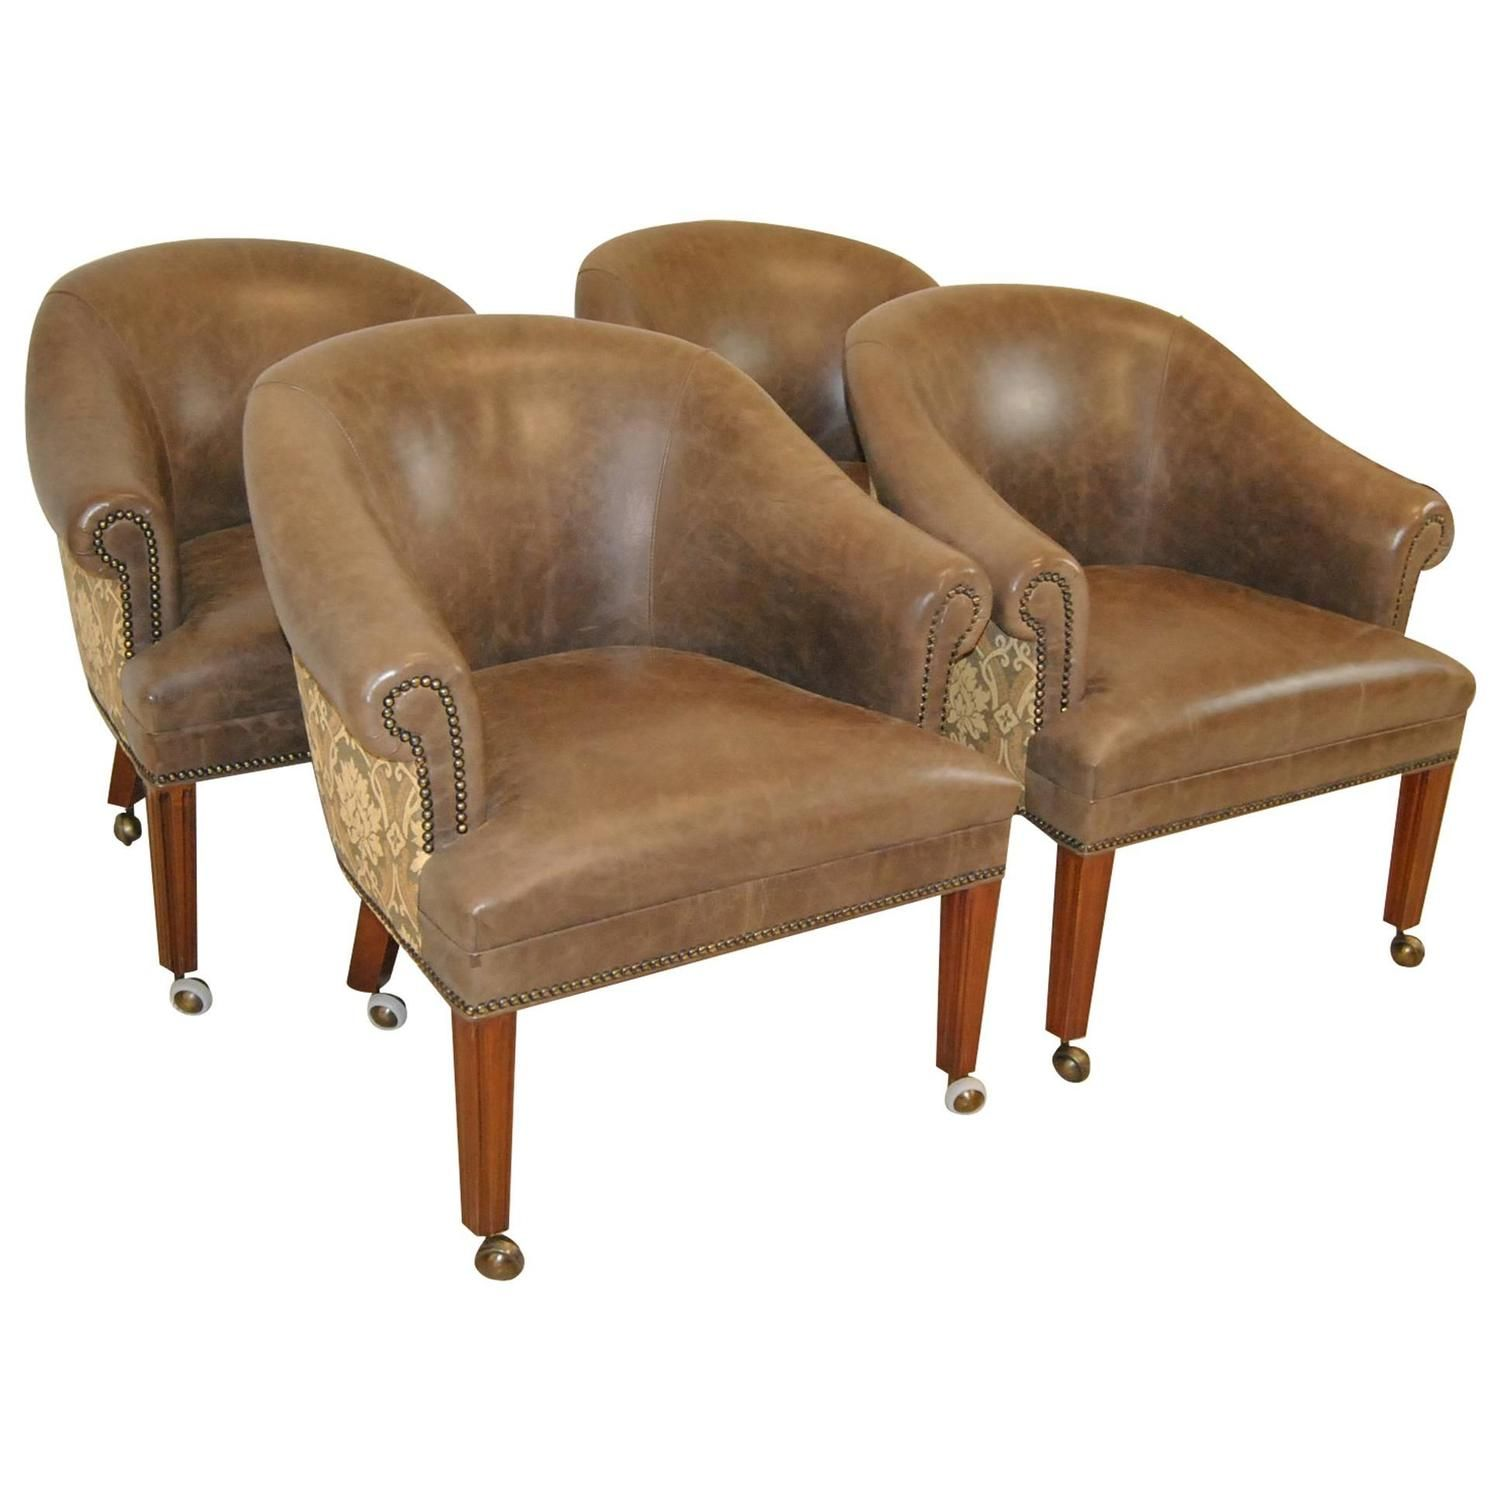 Set Of Four Leather And Tapestry Upholstered Tub Chairs By Hancock U0026 Moore